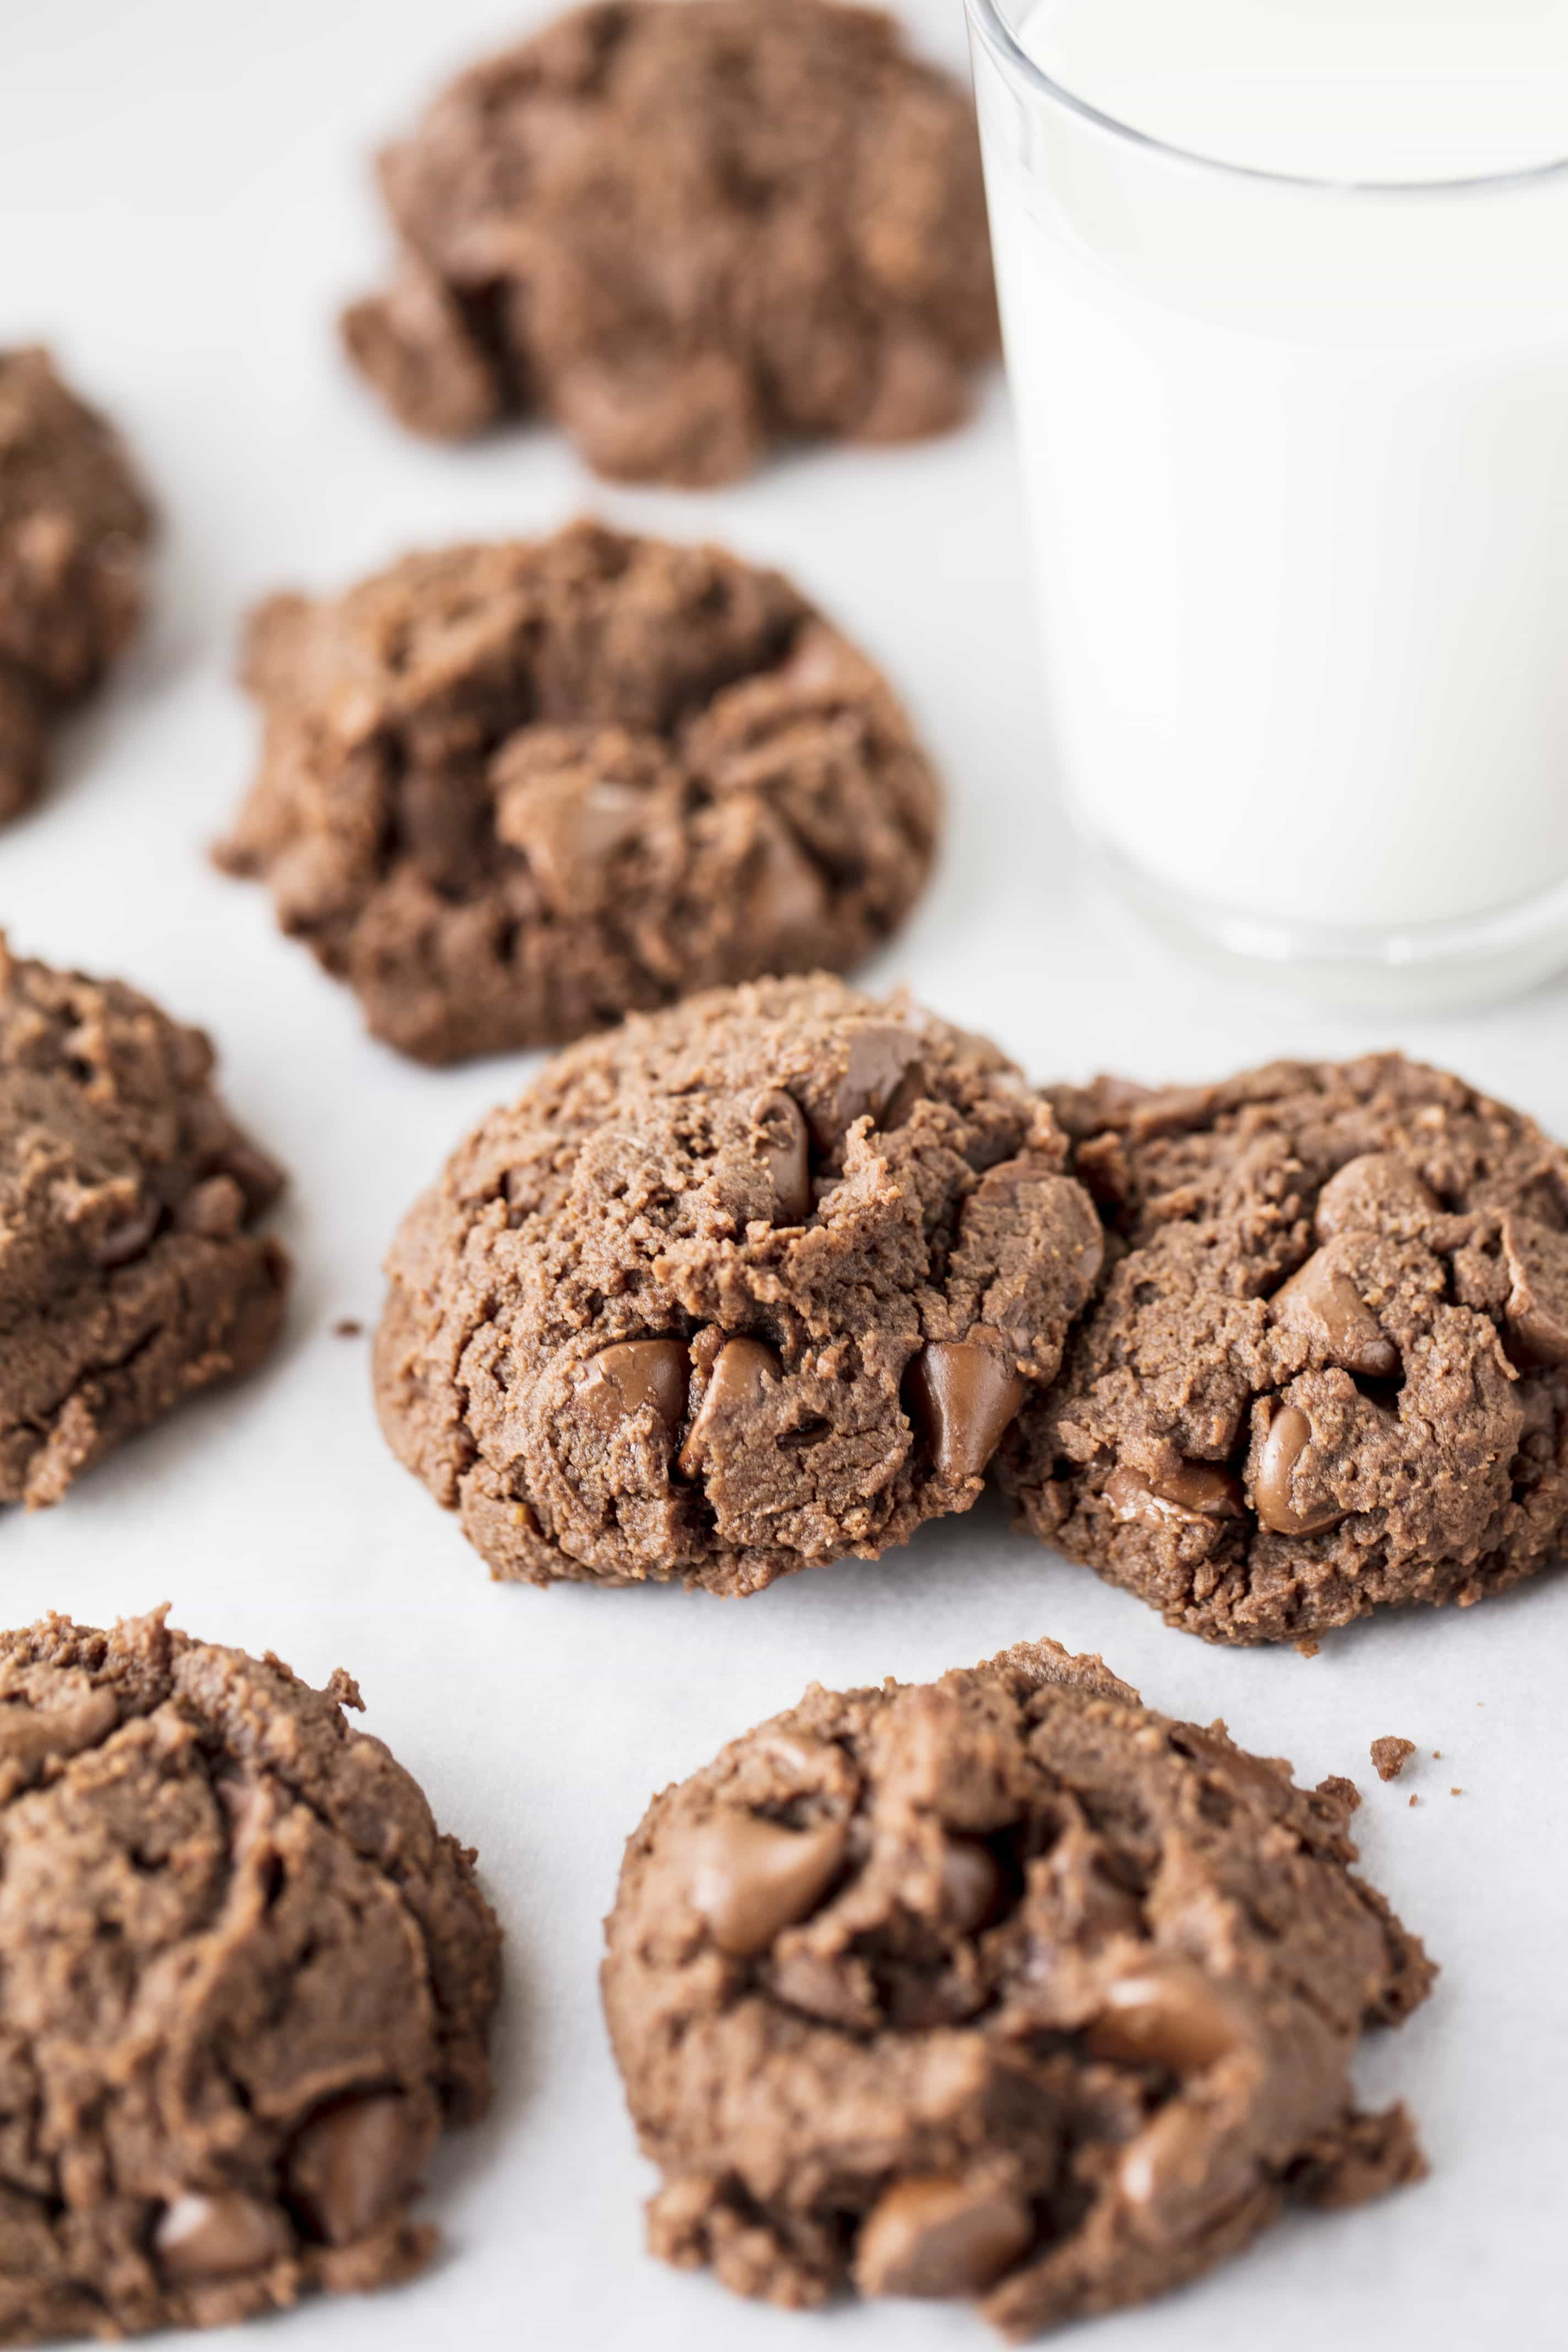 Gluten-Free Peanut Butter Nutella Cookies are super moist and completely fool proof. You'd never know they were made out of beans!